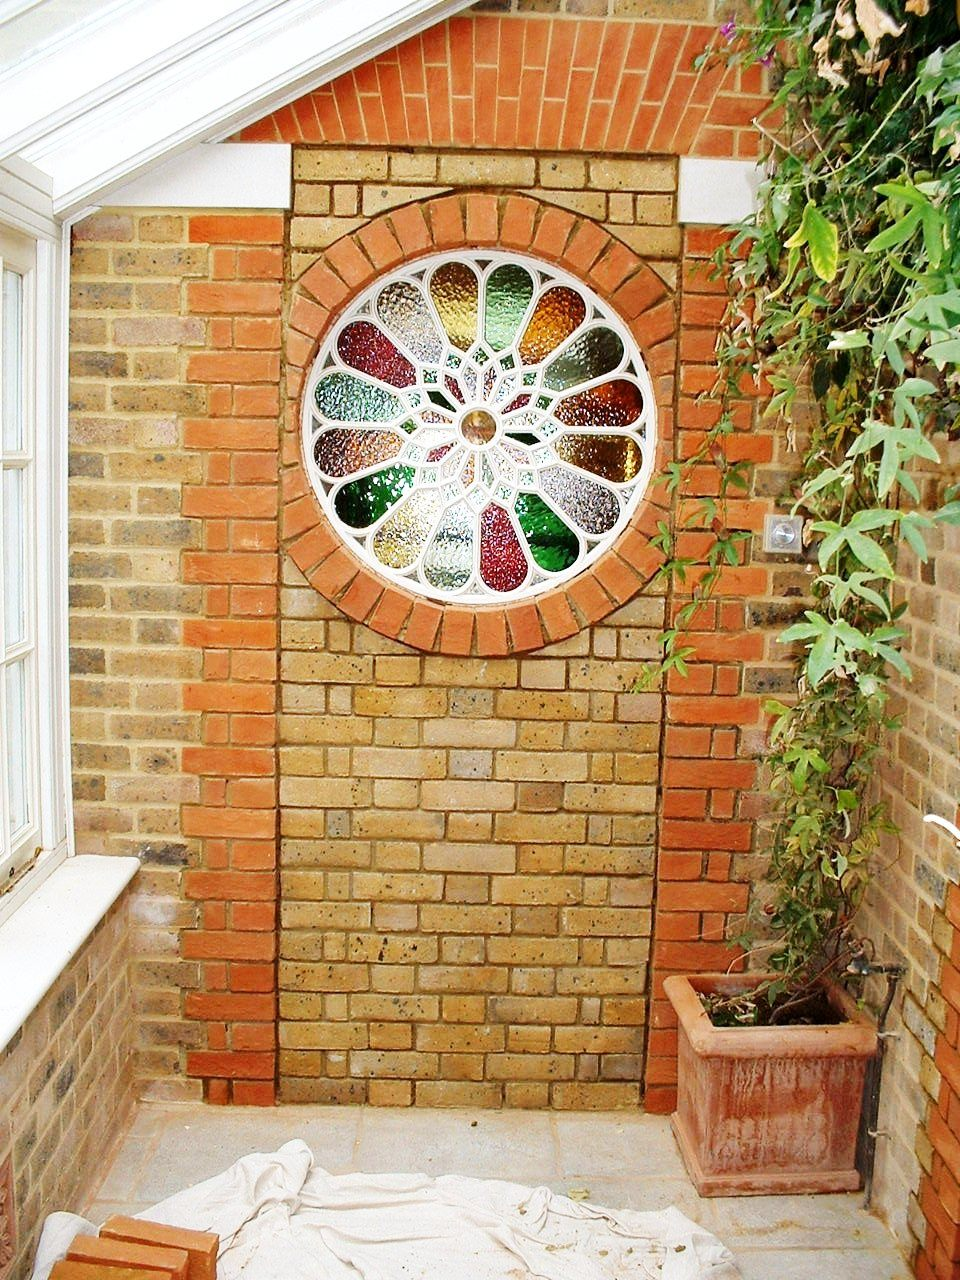 Landscaping in Kent - Window in Brickwork